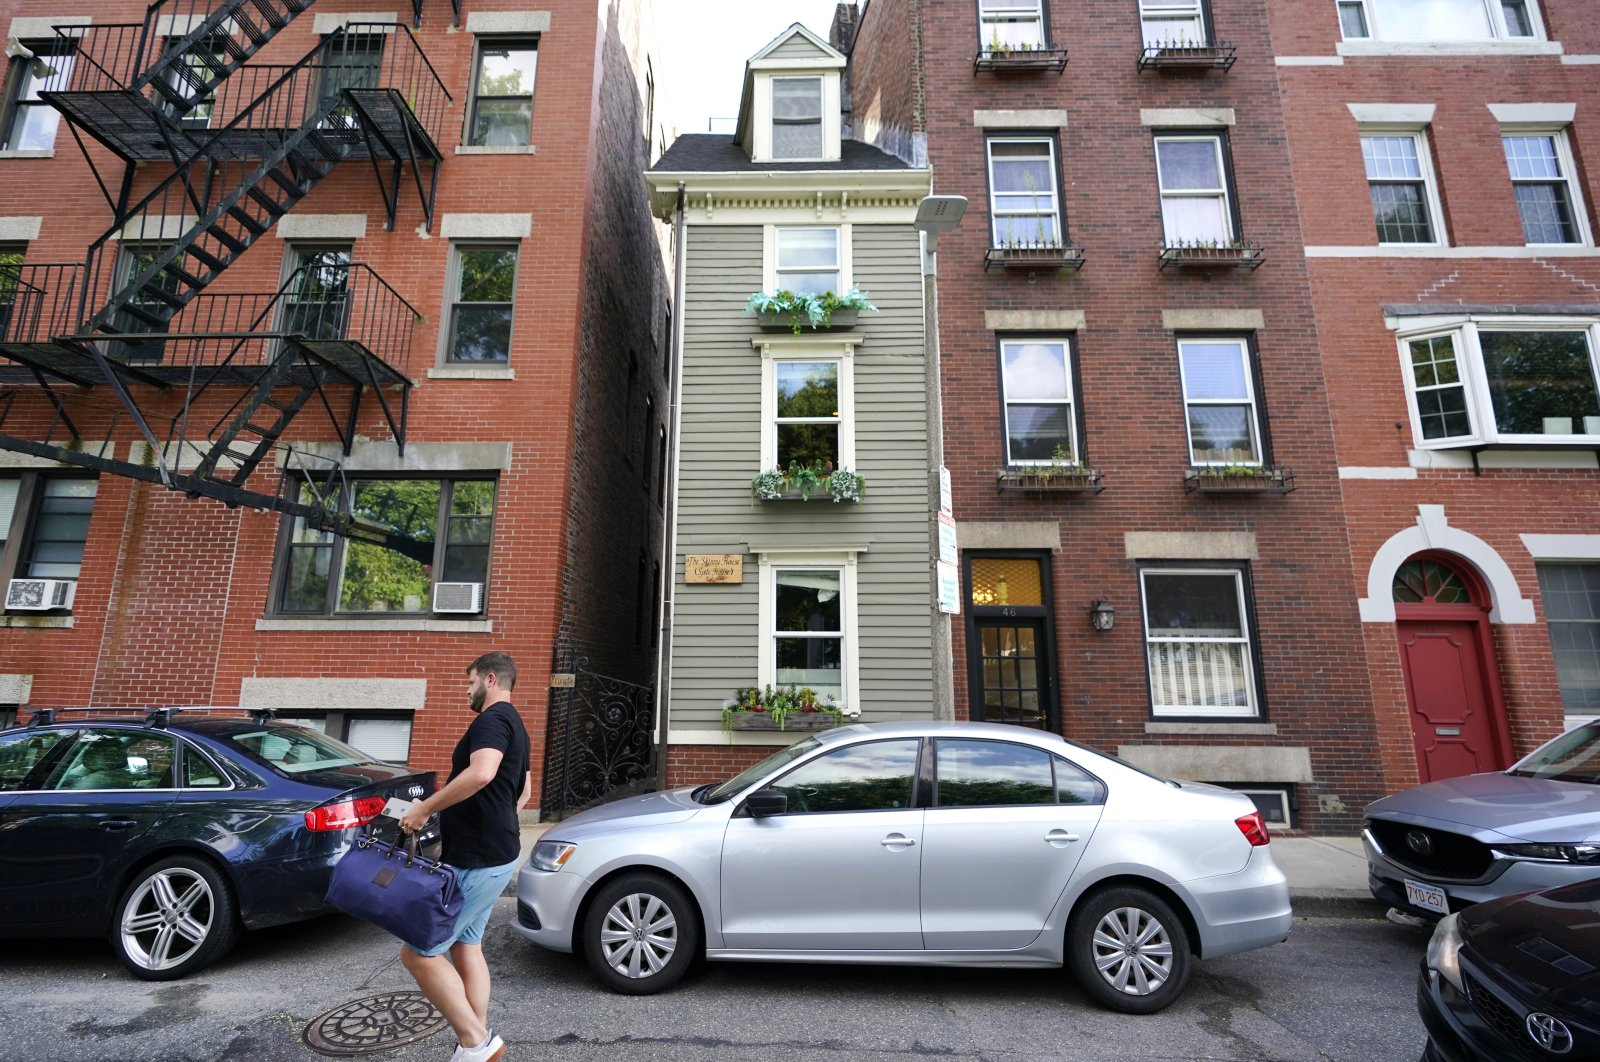 A man walks by Boston's famous Skinny House, middle, Aug. 13, 2021, which is on the market for $1.2 million. (AP Photo)